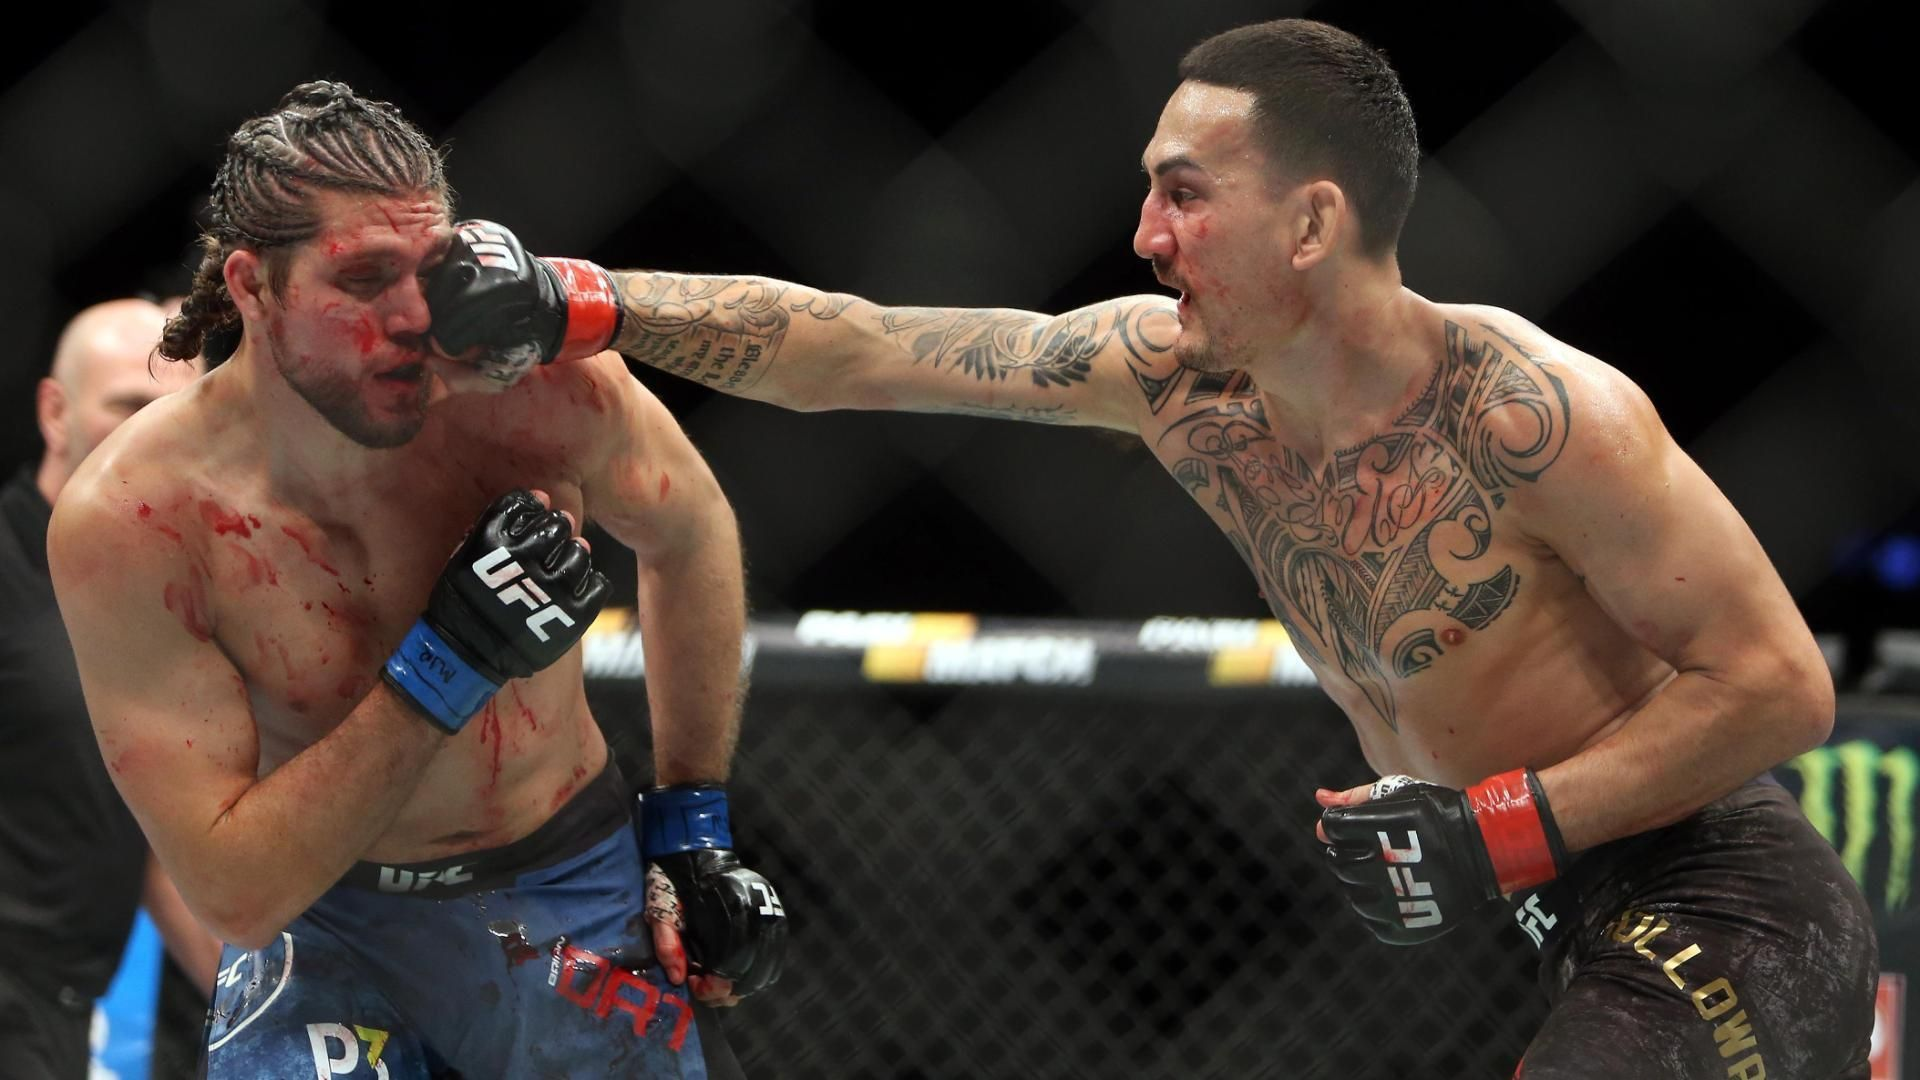 Holloway defeats Ortega to defend title